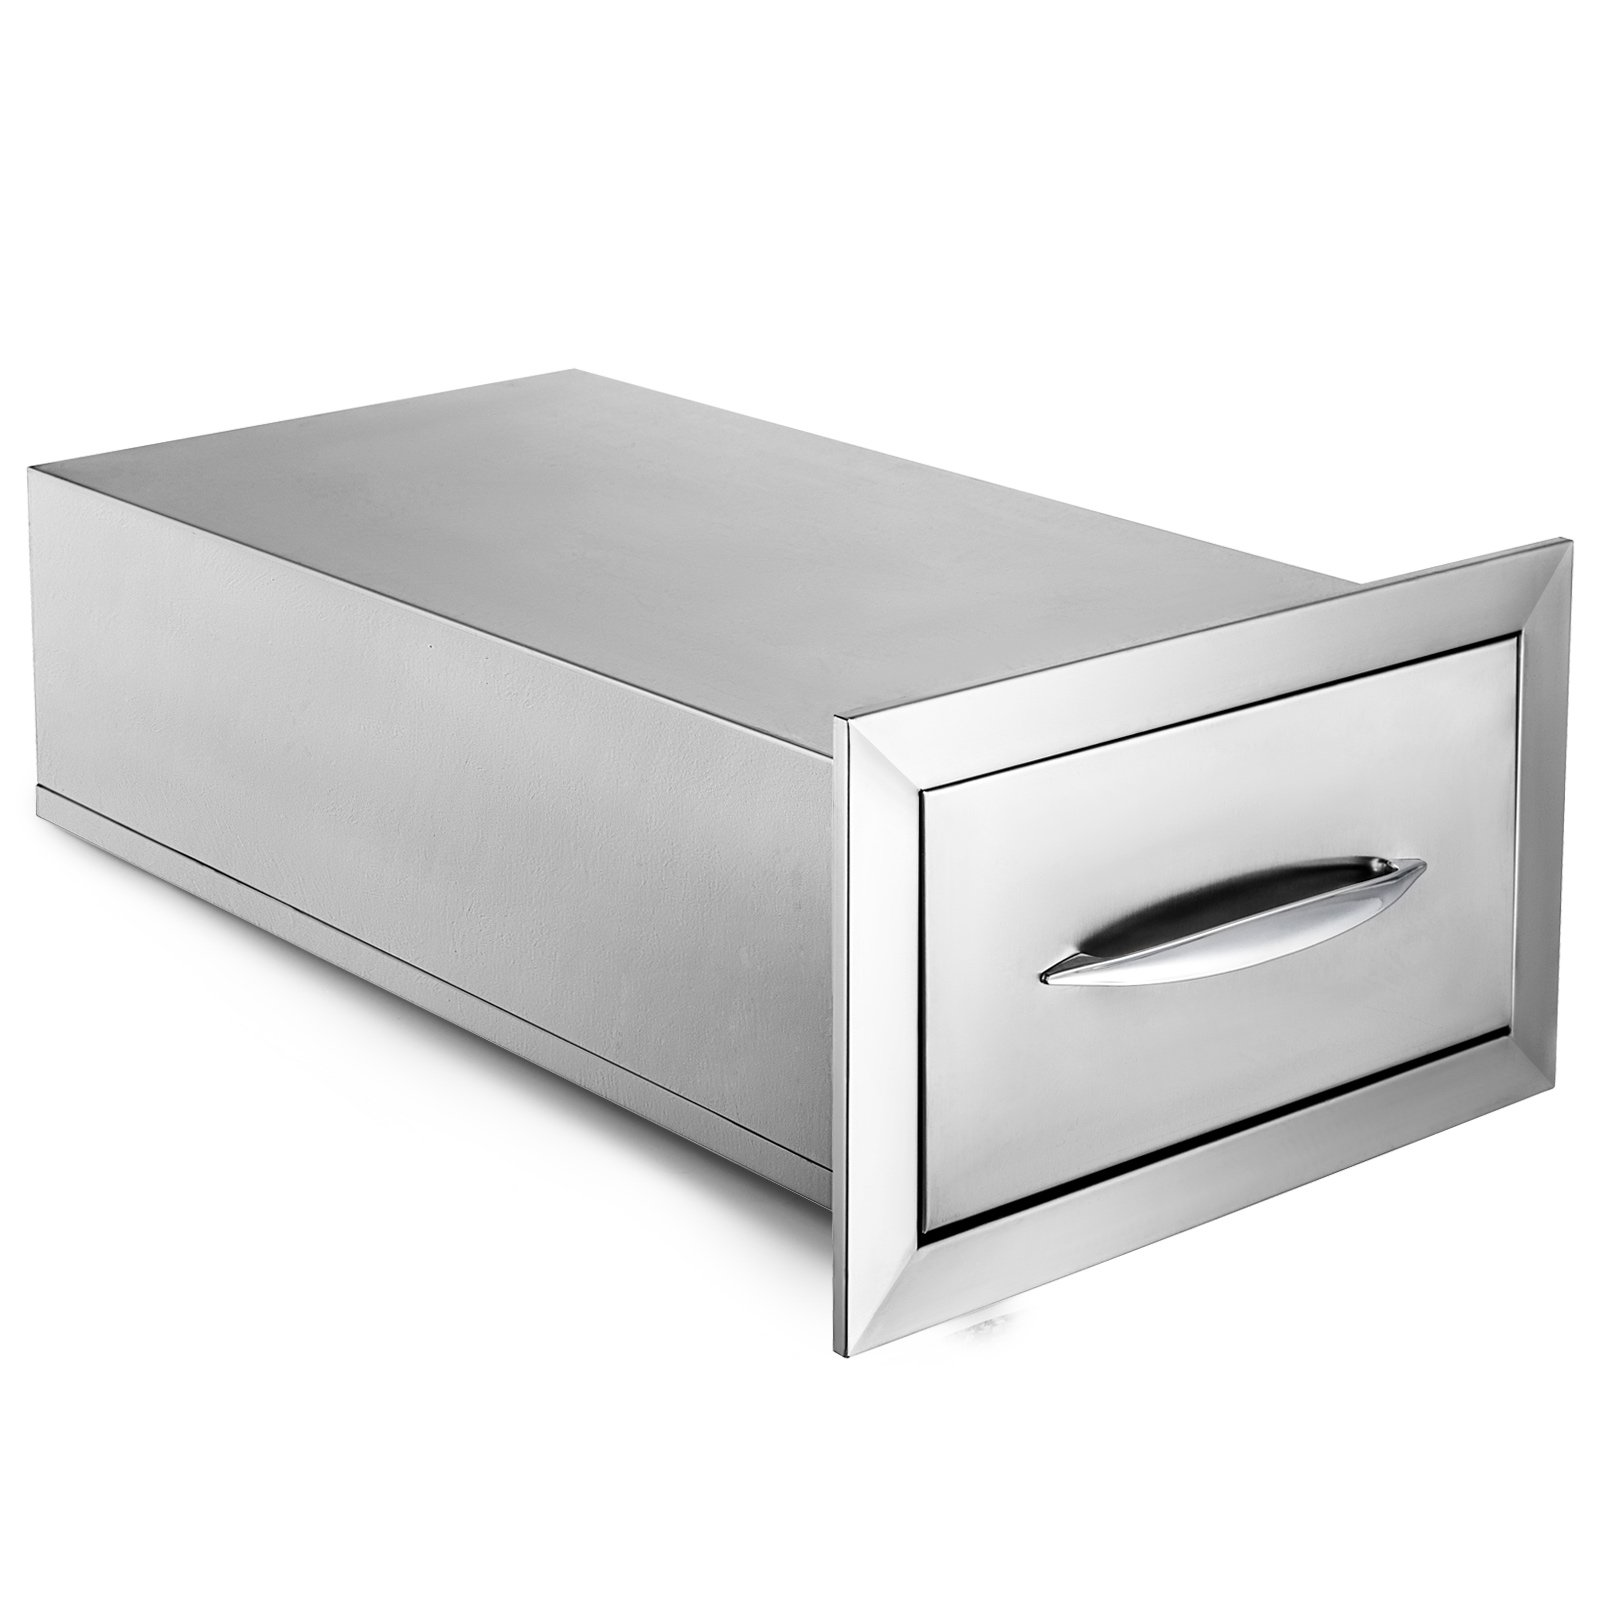 Mophorn 14'' x 8.5'' Outdoor Kitchen Drawer Stainless Steel BBQ Storage with Chrome Handle Flush Mount Sliver, 14 x 8.5 x 23 Inch, Access